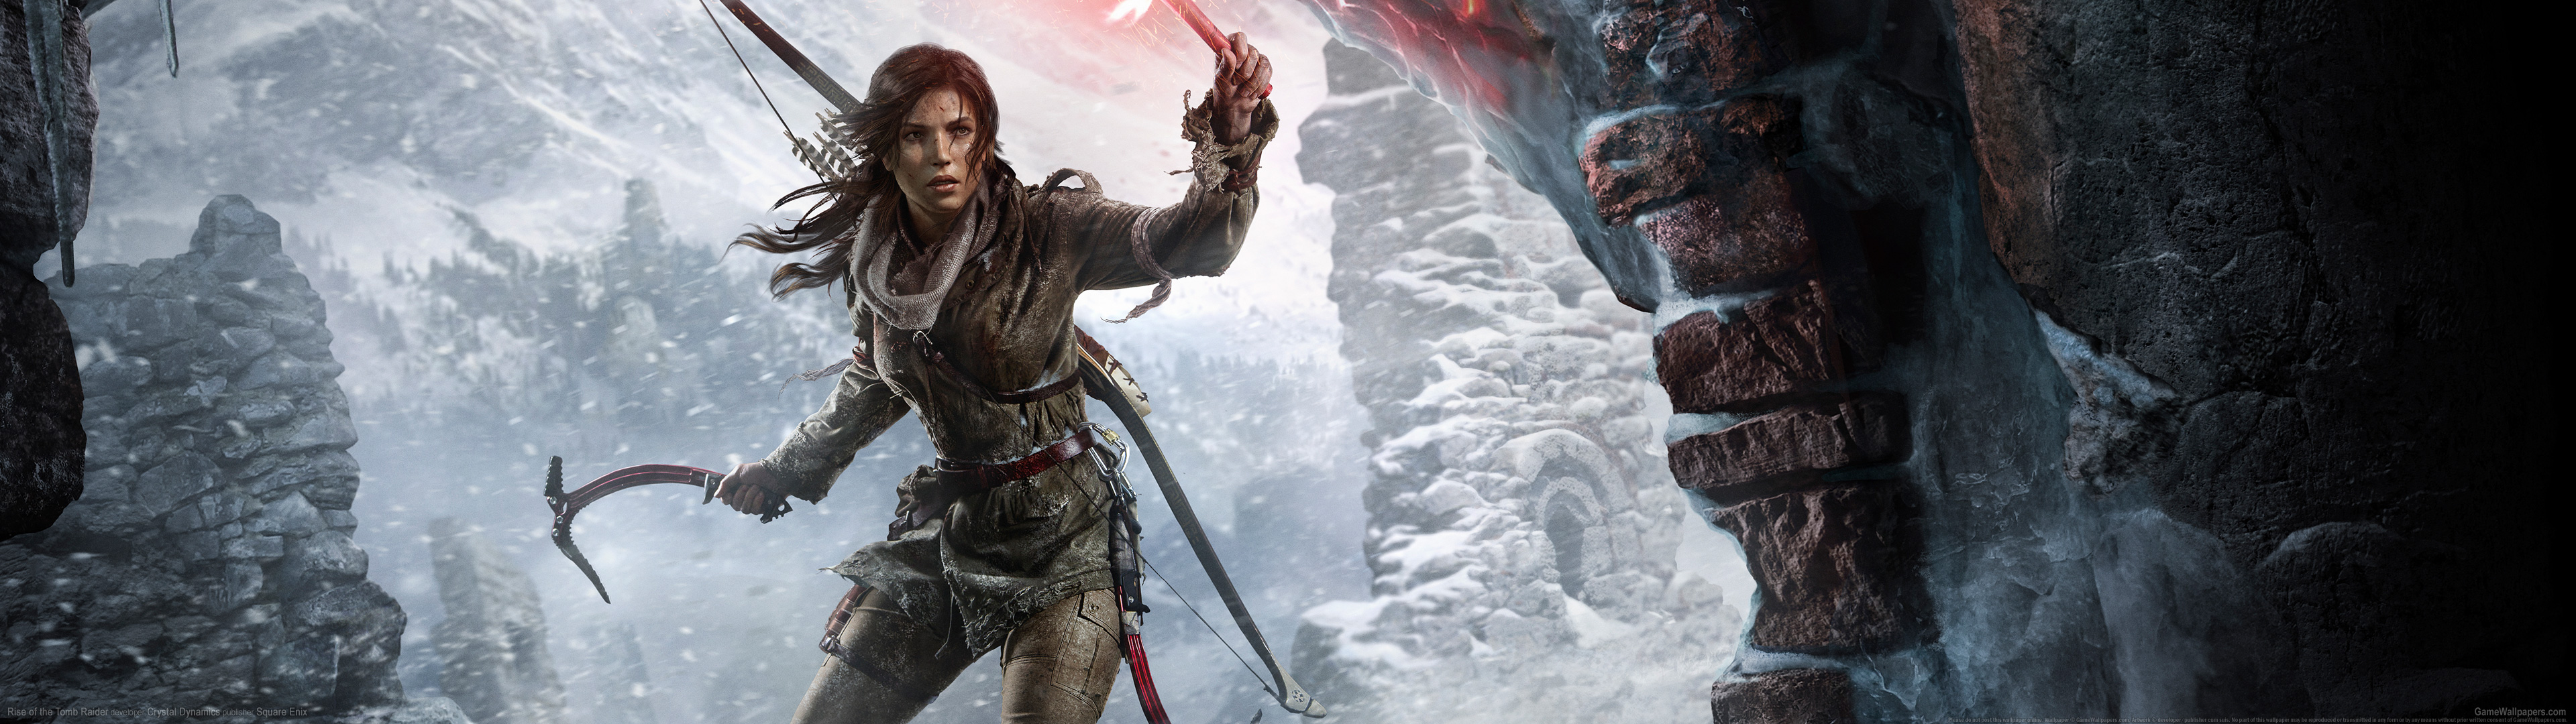 Rise of the Tomb Raider wallpaper 11 3840x1080